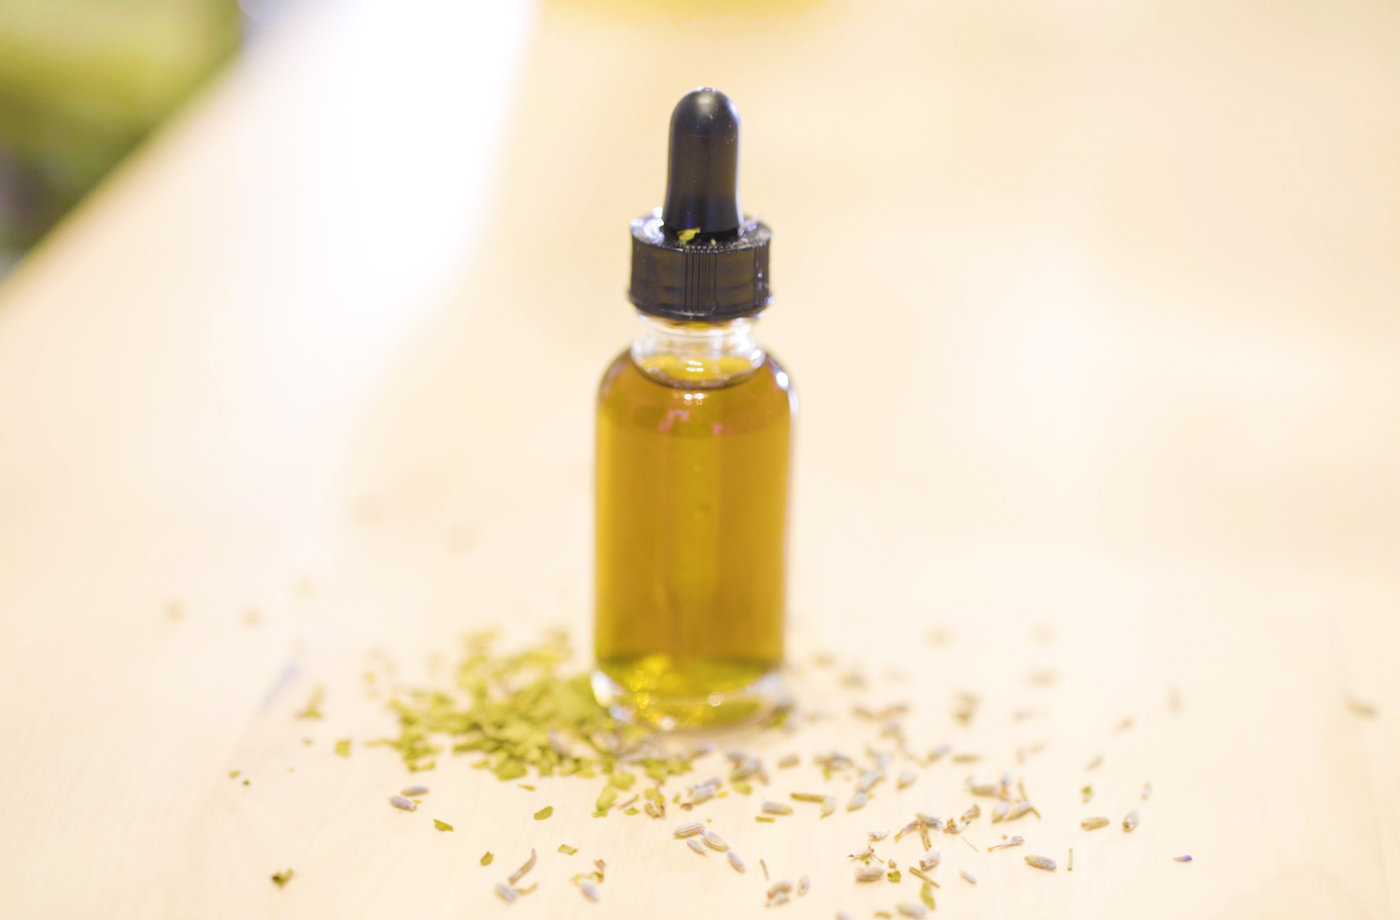 Keep stress at bay with this DIY soothing tincture